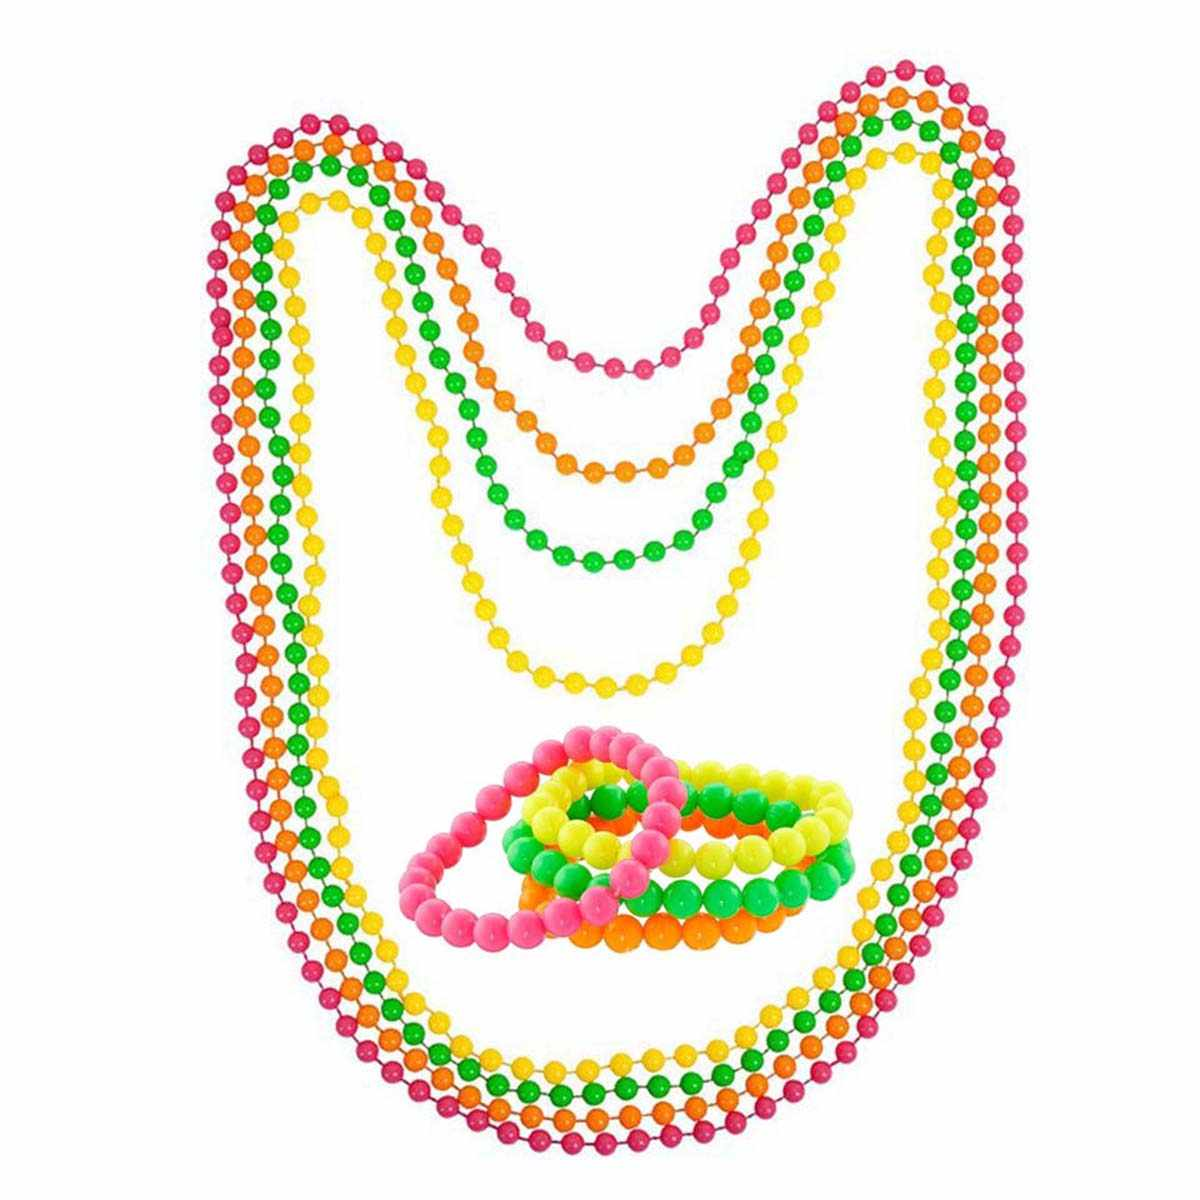 4PCS Neon Beaded Bracelets Plastic Beads Long Necklace Collar String Necklace Theme Costume For Fancy Dress Party Supplies